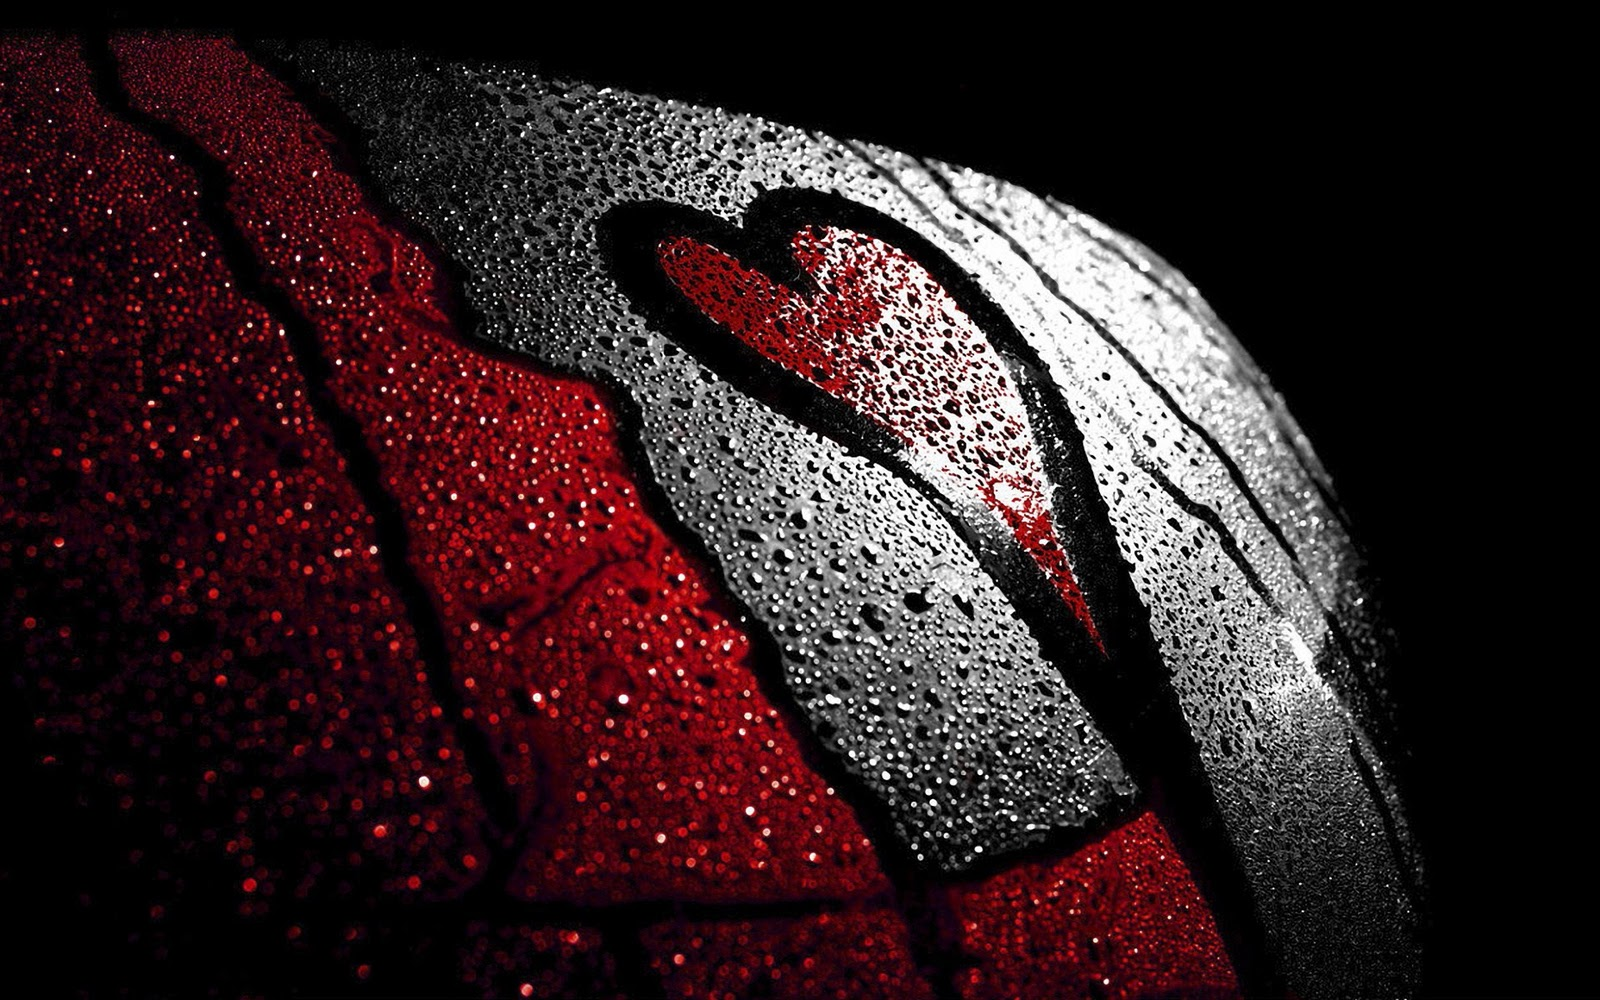 http://4.bp.blogspot.com/-ogbQhw6cew8/Tt2fHx6GYzI/AAAAAAAAA9g/rltK8-SiSsg/s1600/Heart+Red+Drops+HD+Wallpaper+-+LoveWallpapers4u.Blogspot.Com.jpg